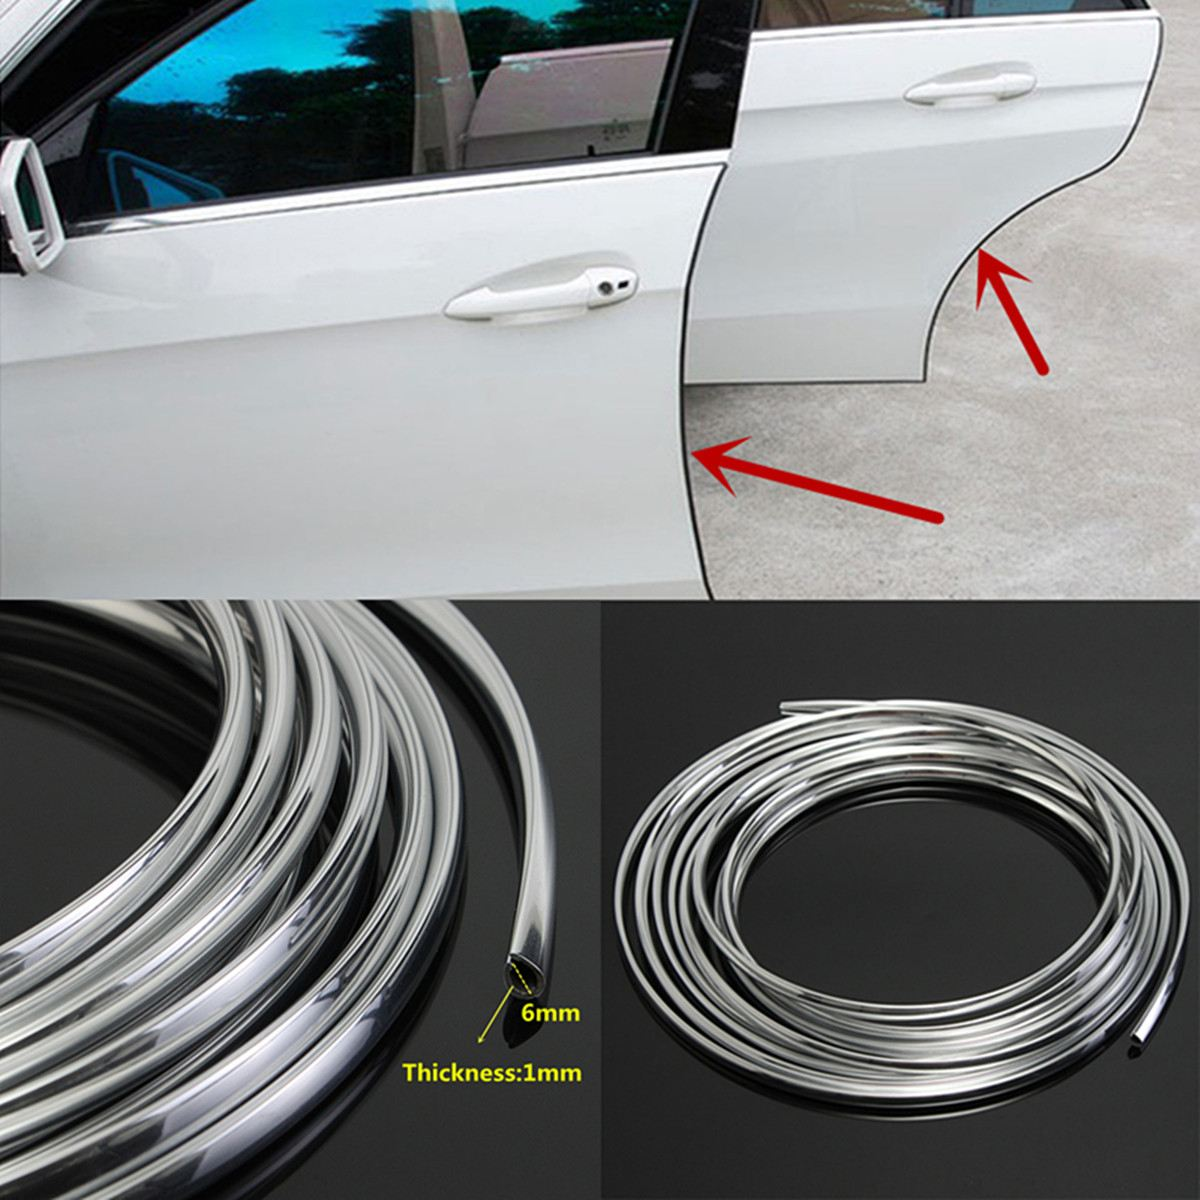 16FT//5M Car Auto Door Moulding Rubber Strip Trim Guard Edge Protector Cover Gray